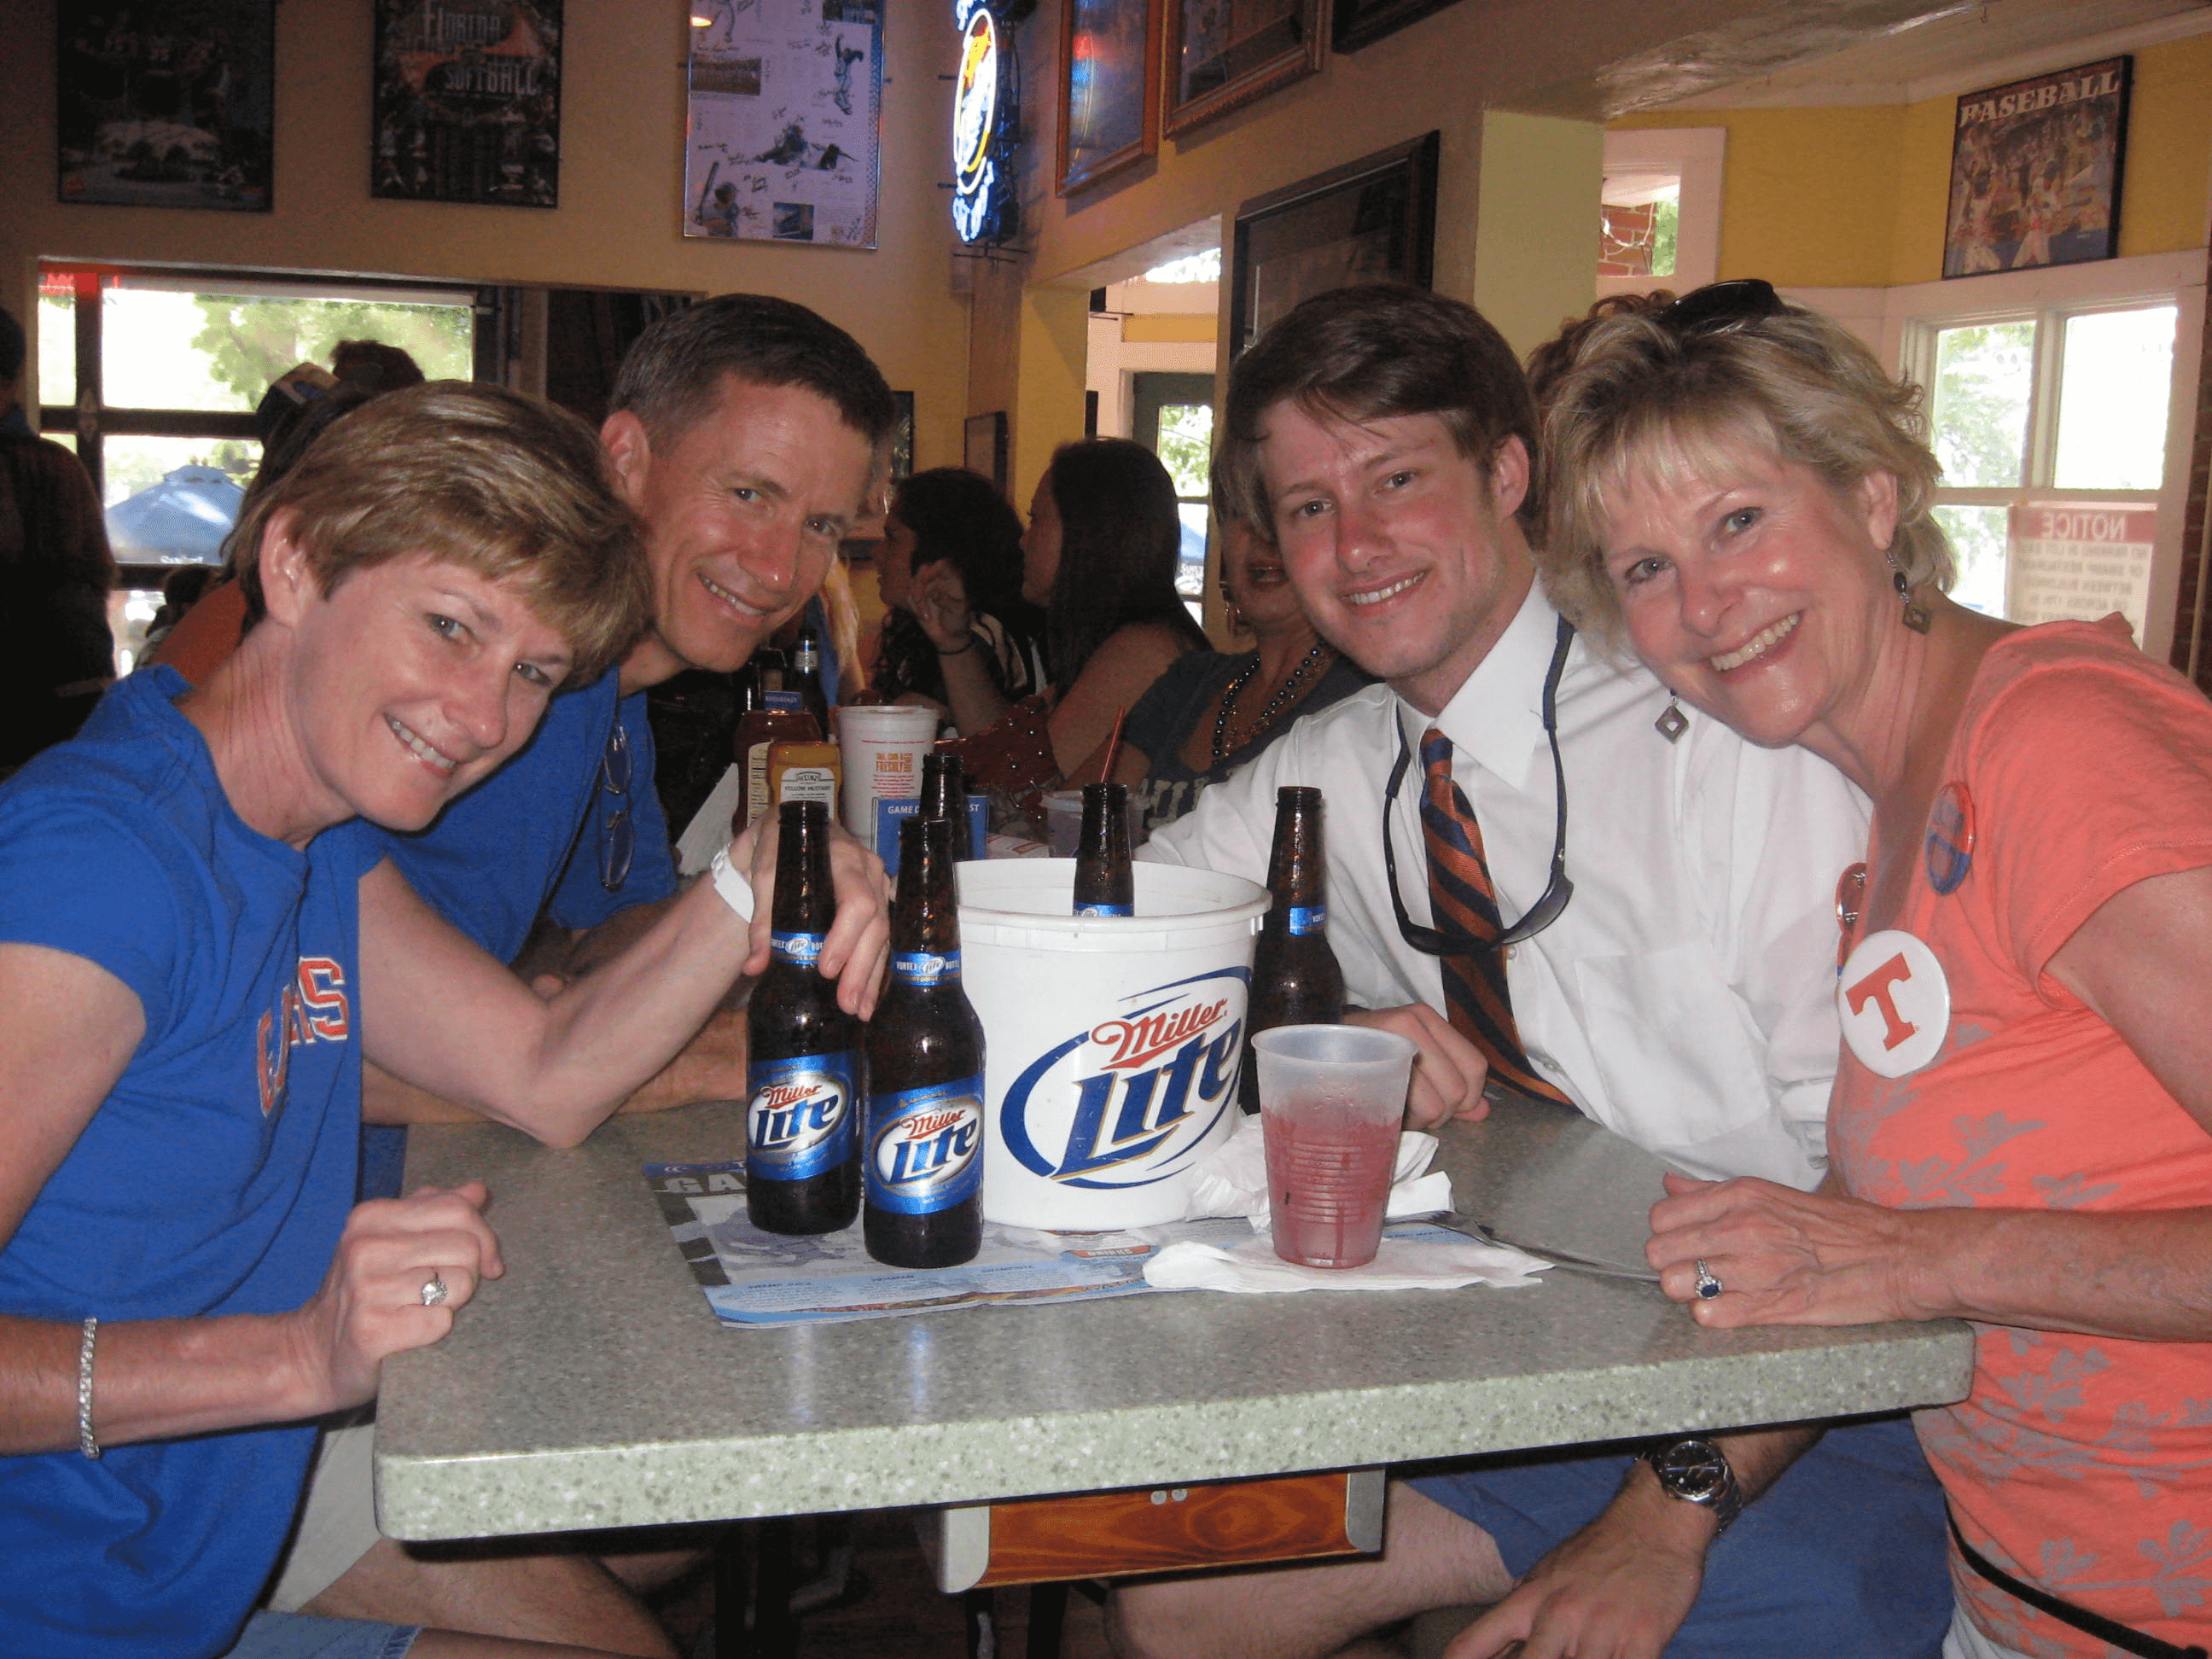 It's Miller Time before Tennessee/Fl game photo by Kathy Miller